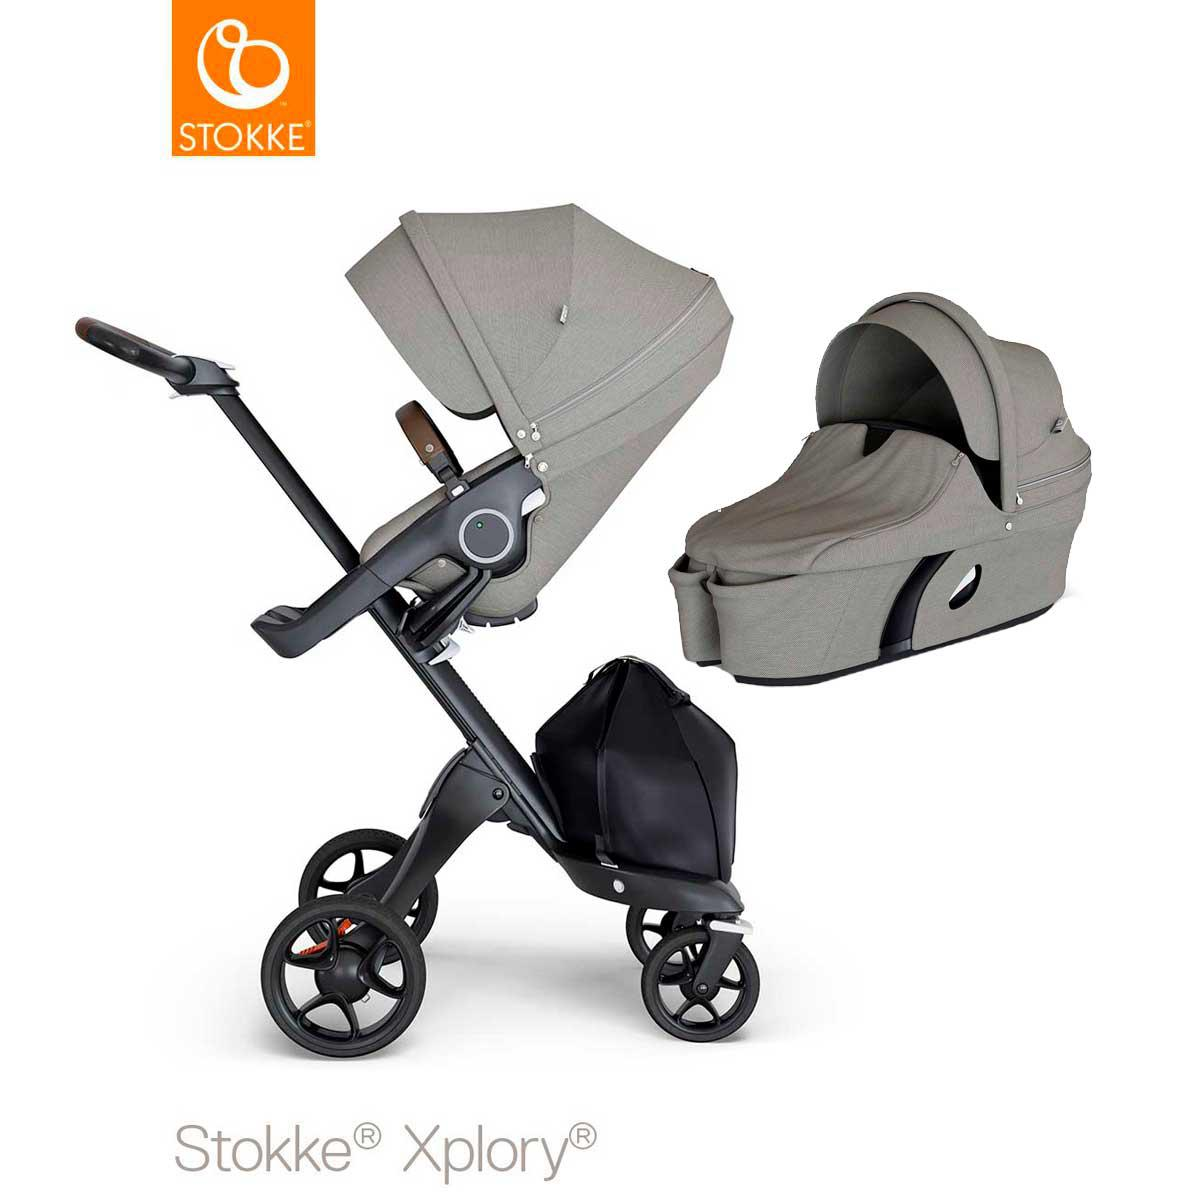 Carrito completo-con capazo V6 XPLORY Stokke negro sintético marrón-brushed grey